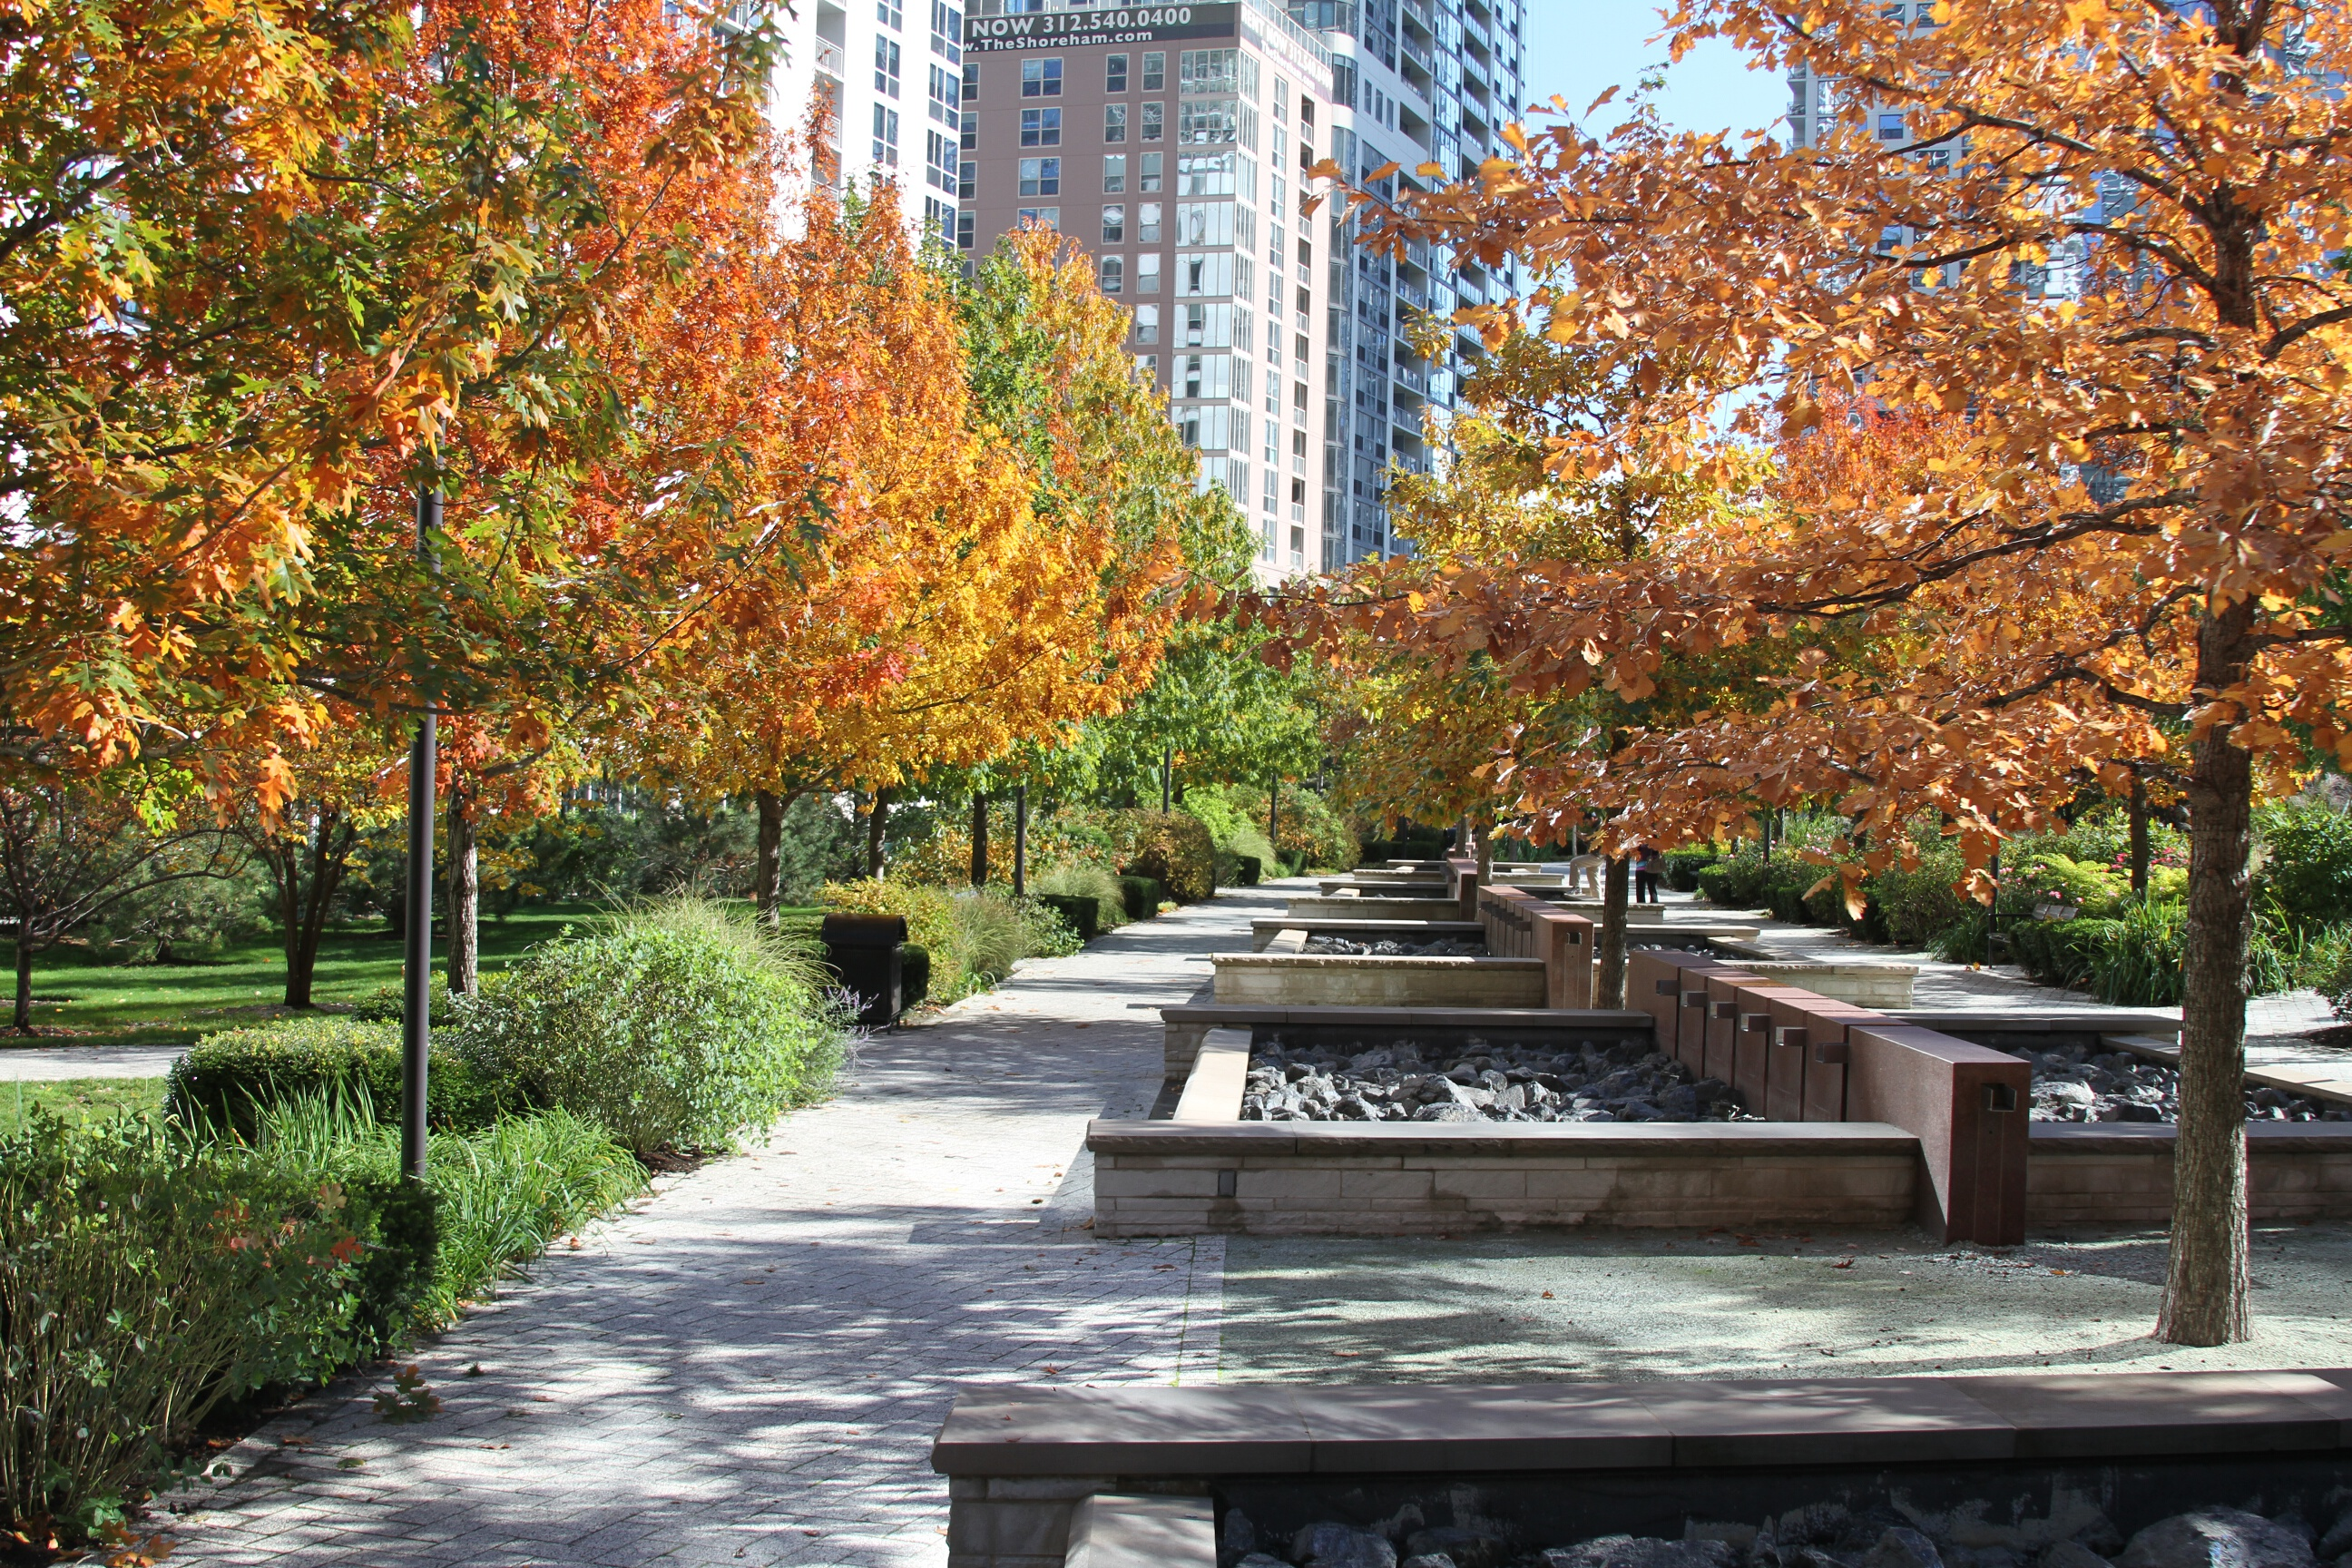 Fall in LSE Park